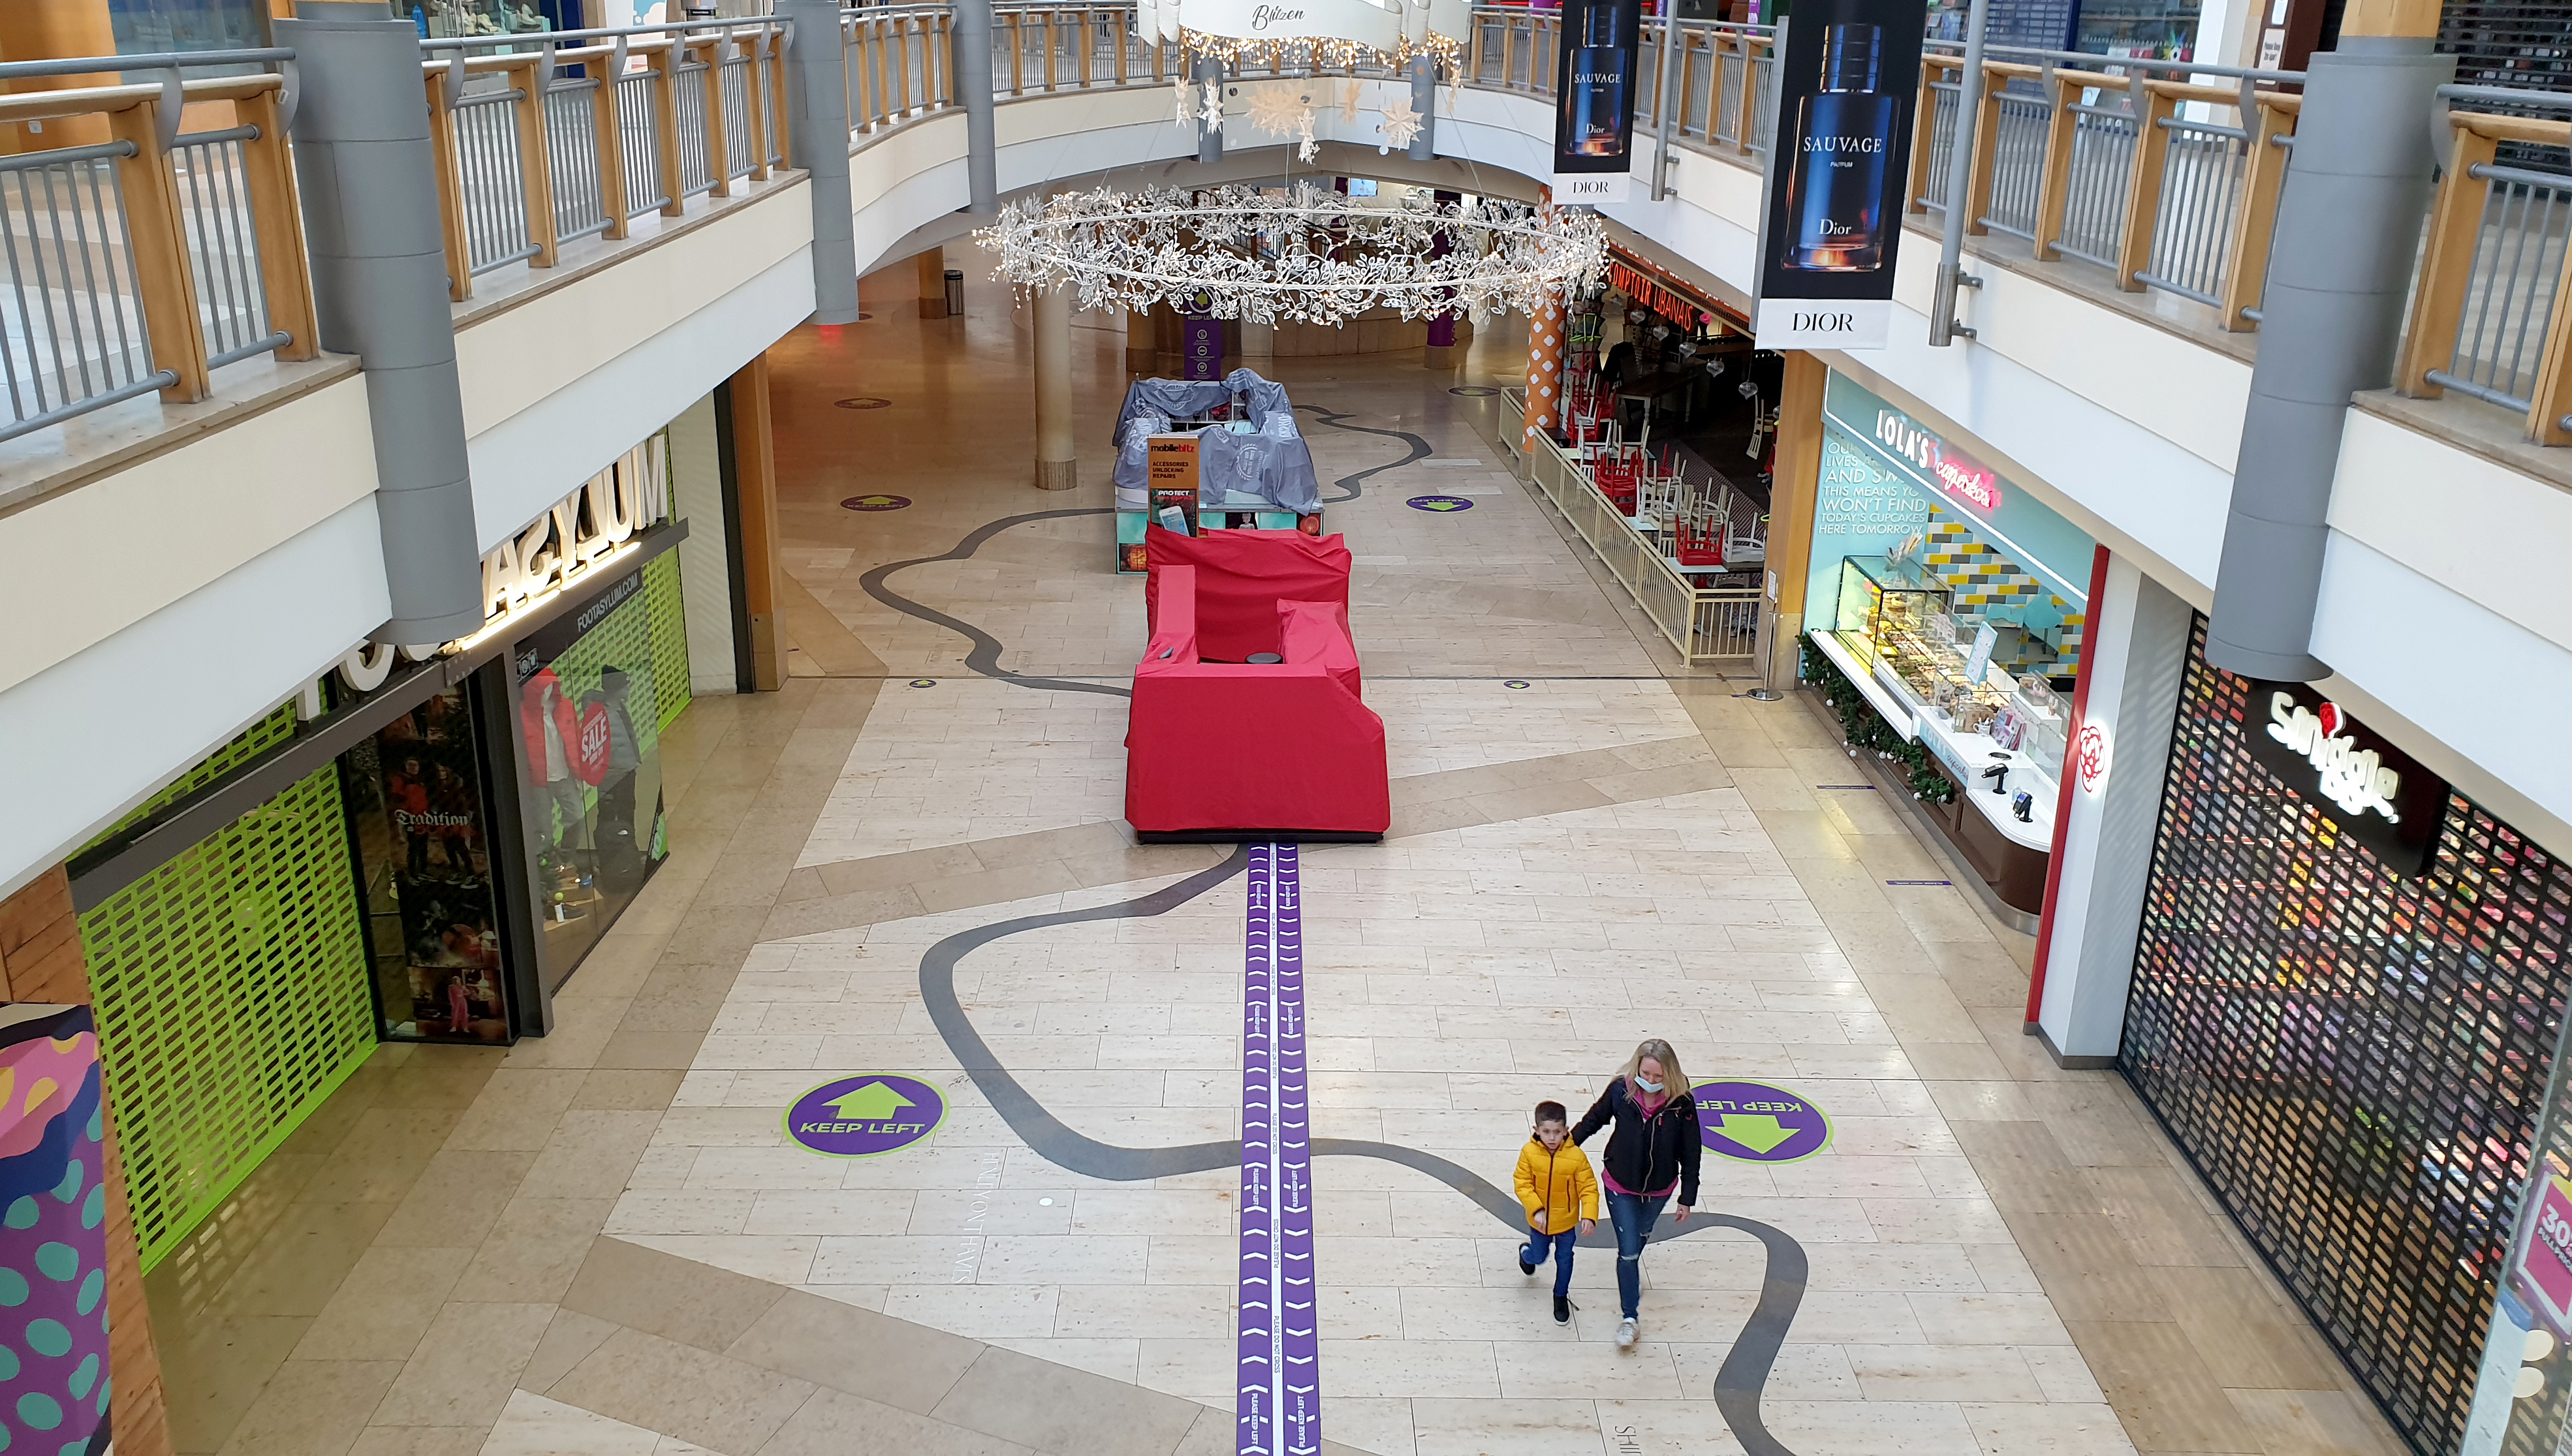 A view of Bluewater shopping centre in Stone, Kent, after after Prime Minister Boris Johnson cancelled Christmas for almost 18 million people across London and eastern and south-east England, after scientists warned of the rapid spread of the new variant coronavirus.